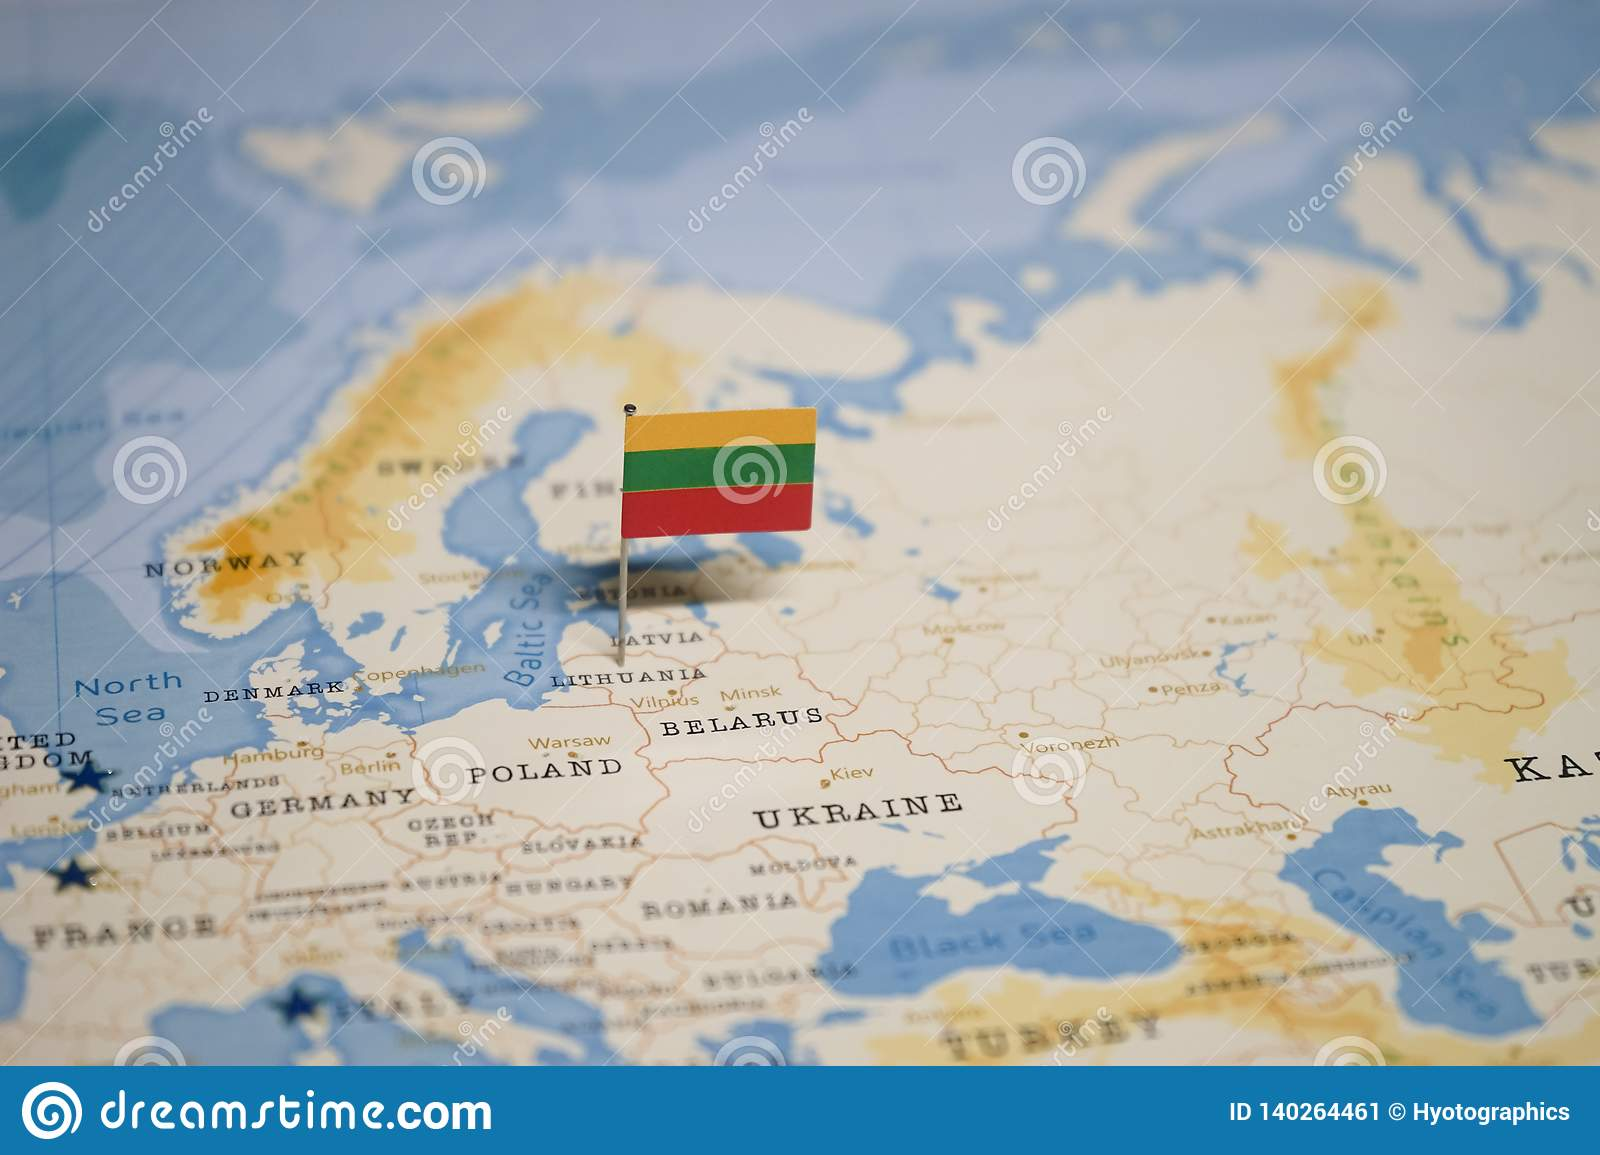 The Flag Of Lithuania In The World Map Stock Image Image Of Advertisement Globe 140264461